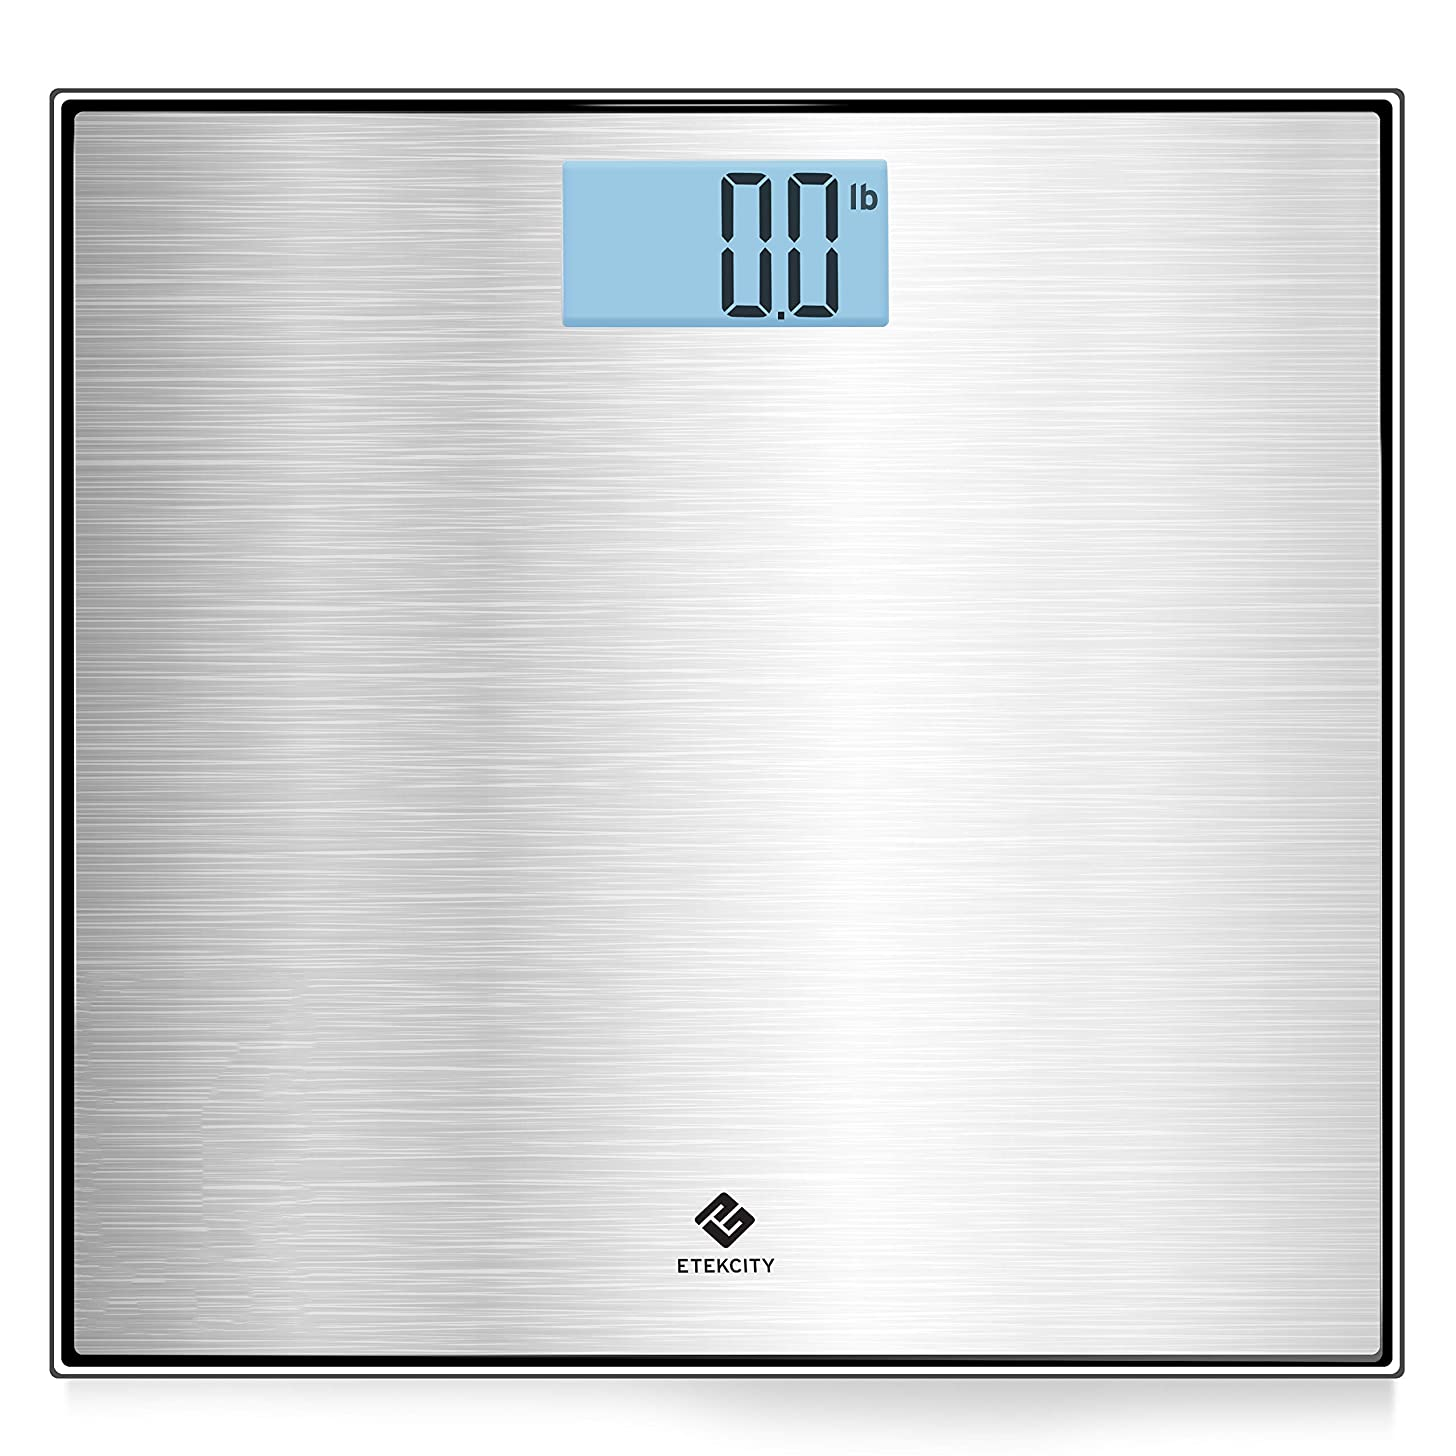 Etekcity Digital Body Weight Bathroom Scale with Stainless Steel Platform, Step On and Auto Zero/ON/OFF Technology, Backlit LCD Display, 400 Pounds